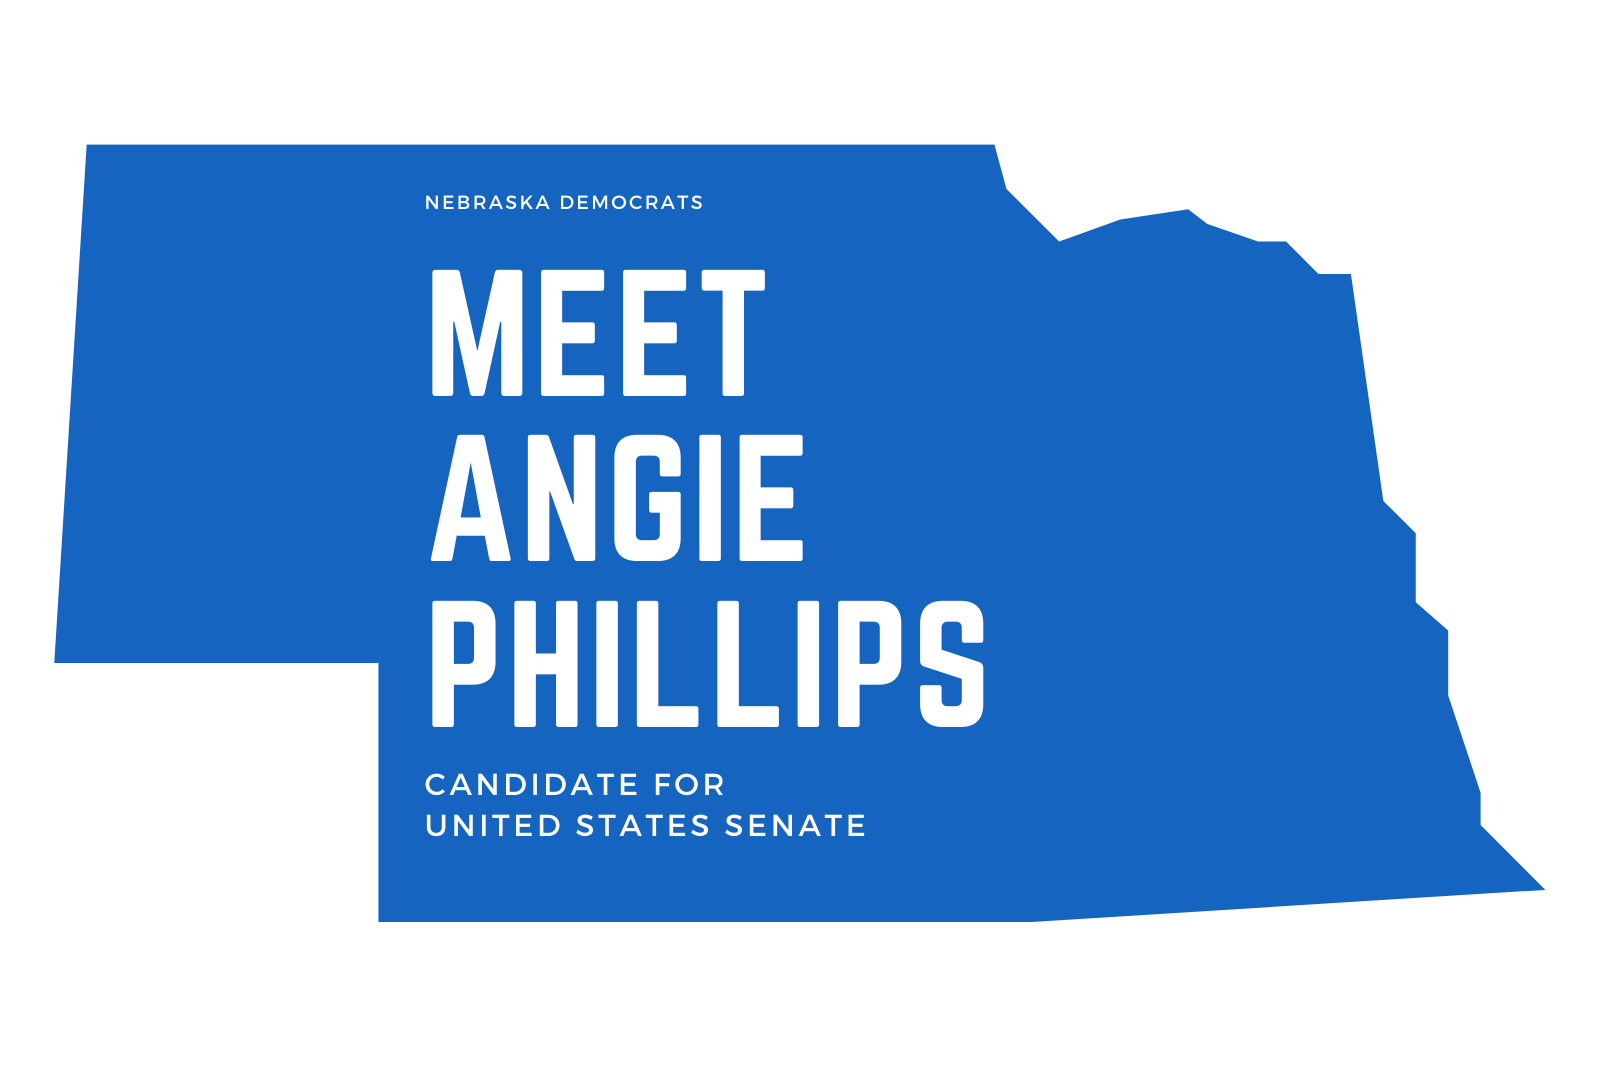 Angie Phillips for U.S. Senate